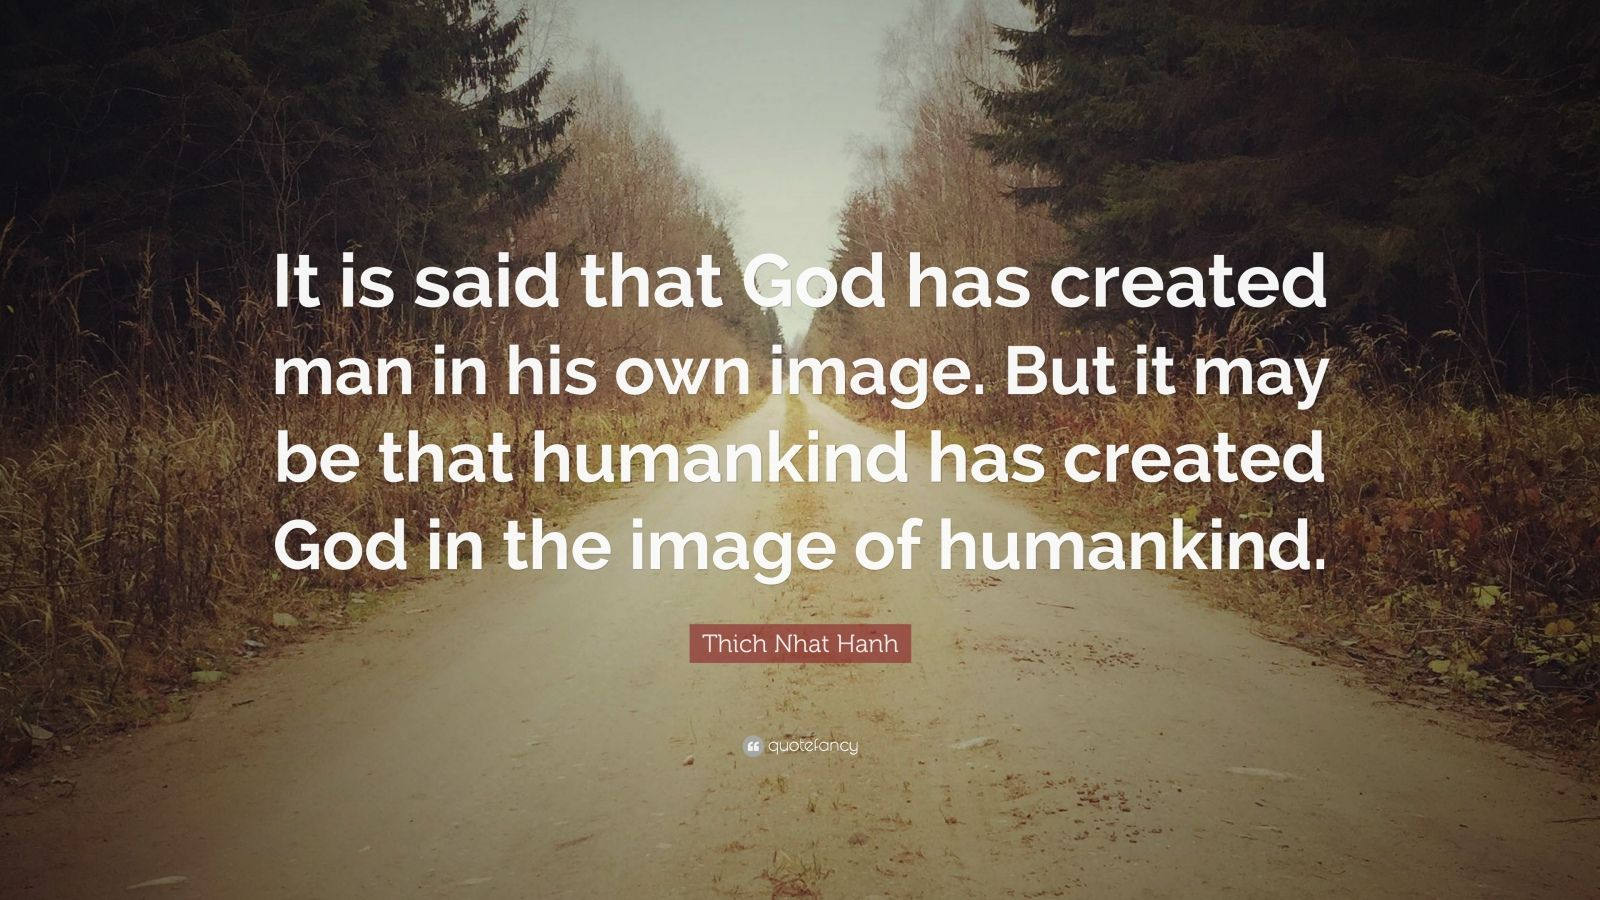 "Thich Nhat Hanh Quote: ""It is said that God has created man in his own image. But it may be that humankind has created God in the image of humankind."""